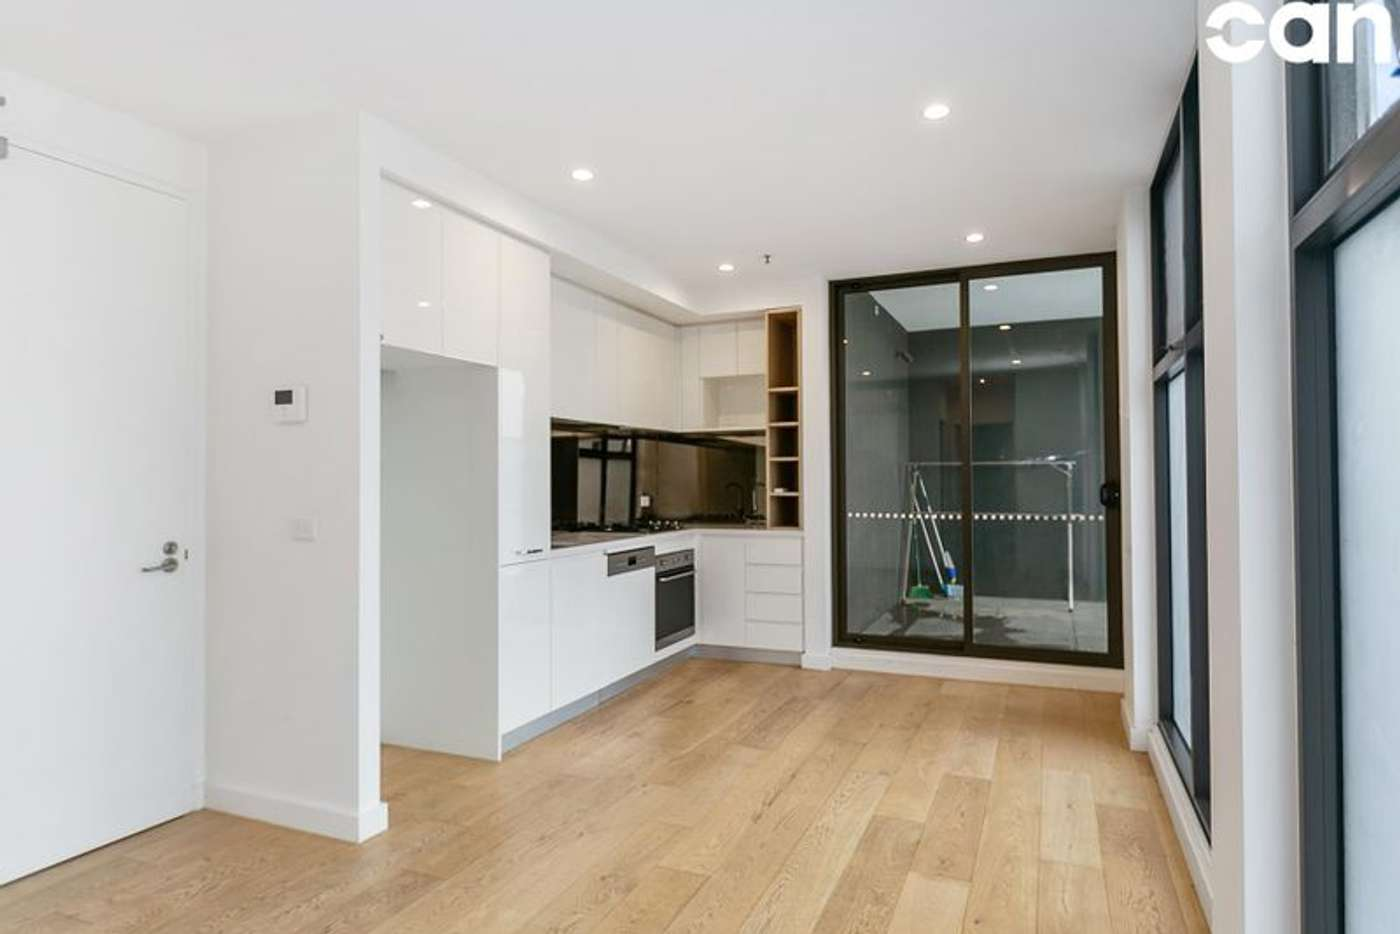 Main view of Homely apartment listing, 211/16 Bent Street, Bentleigh VIC 3204